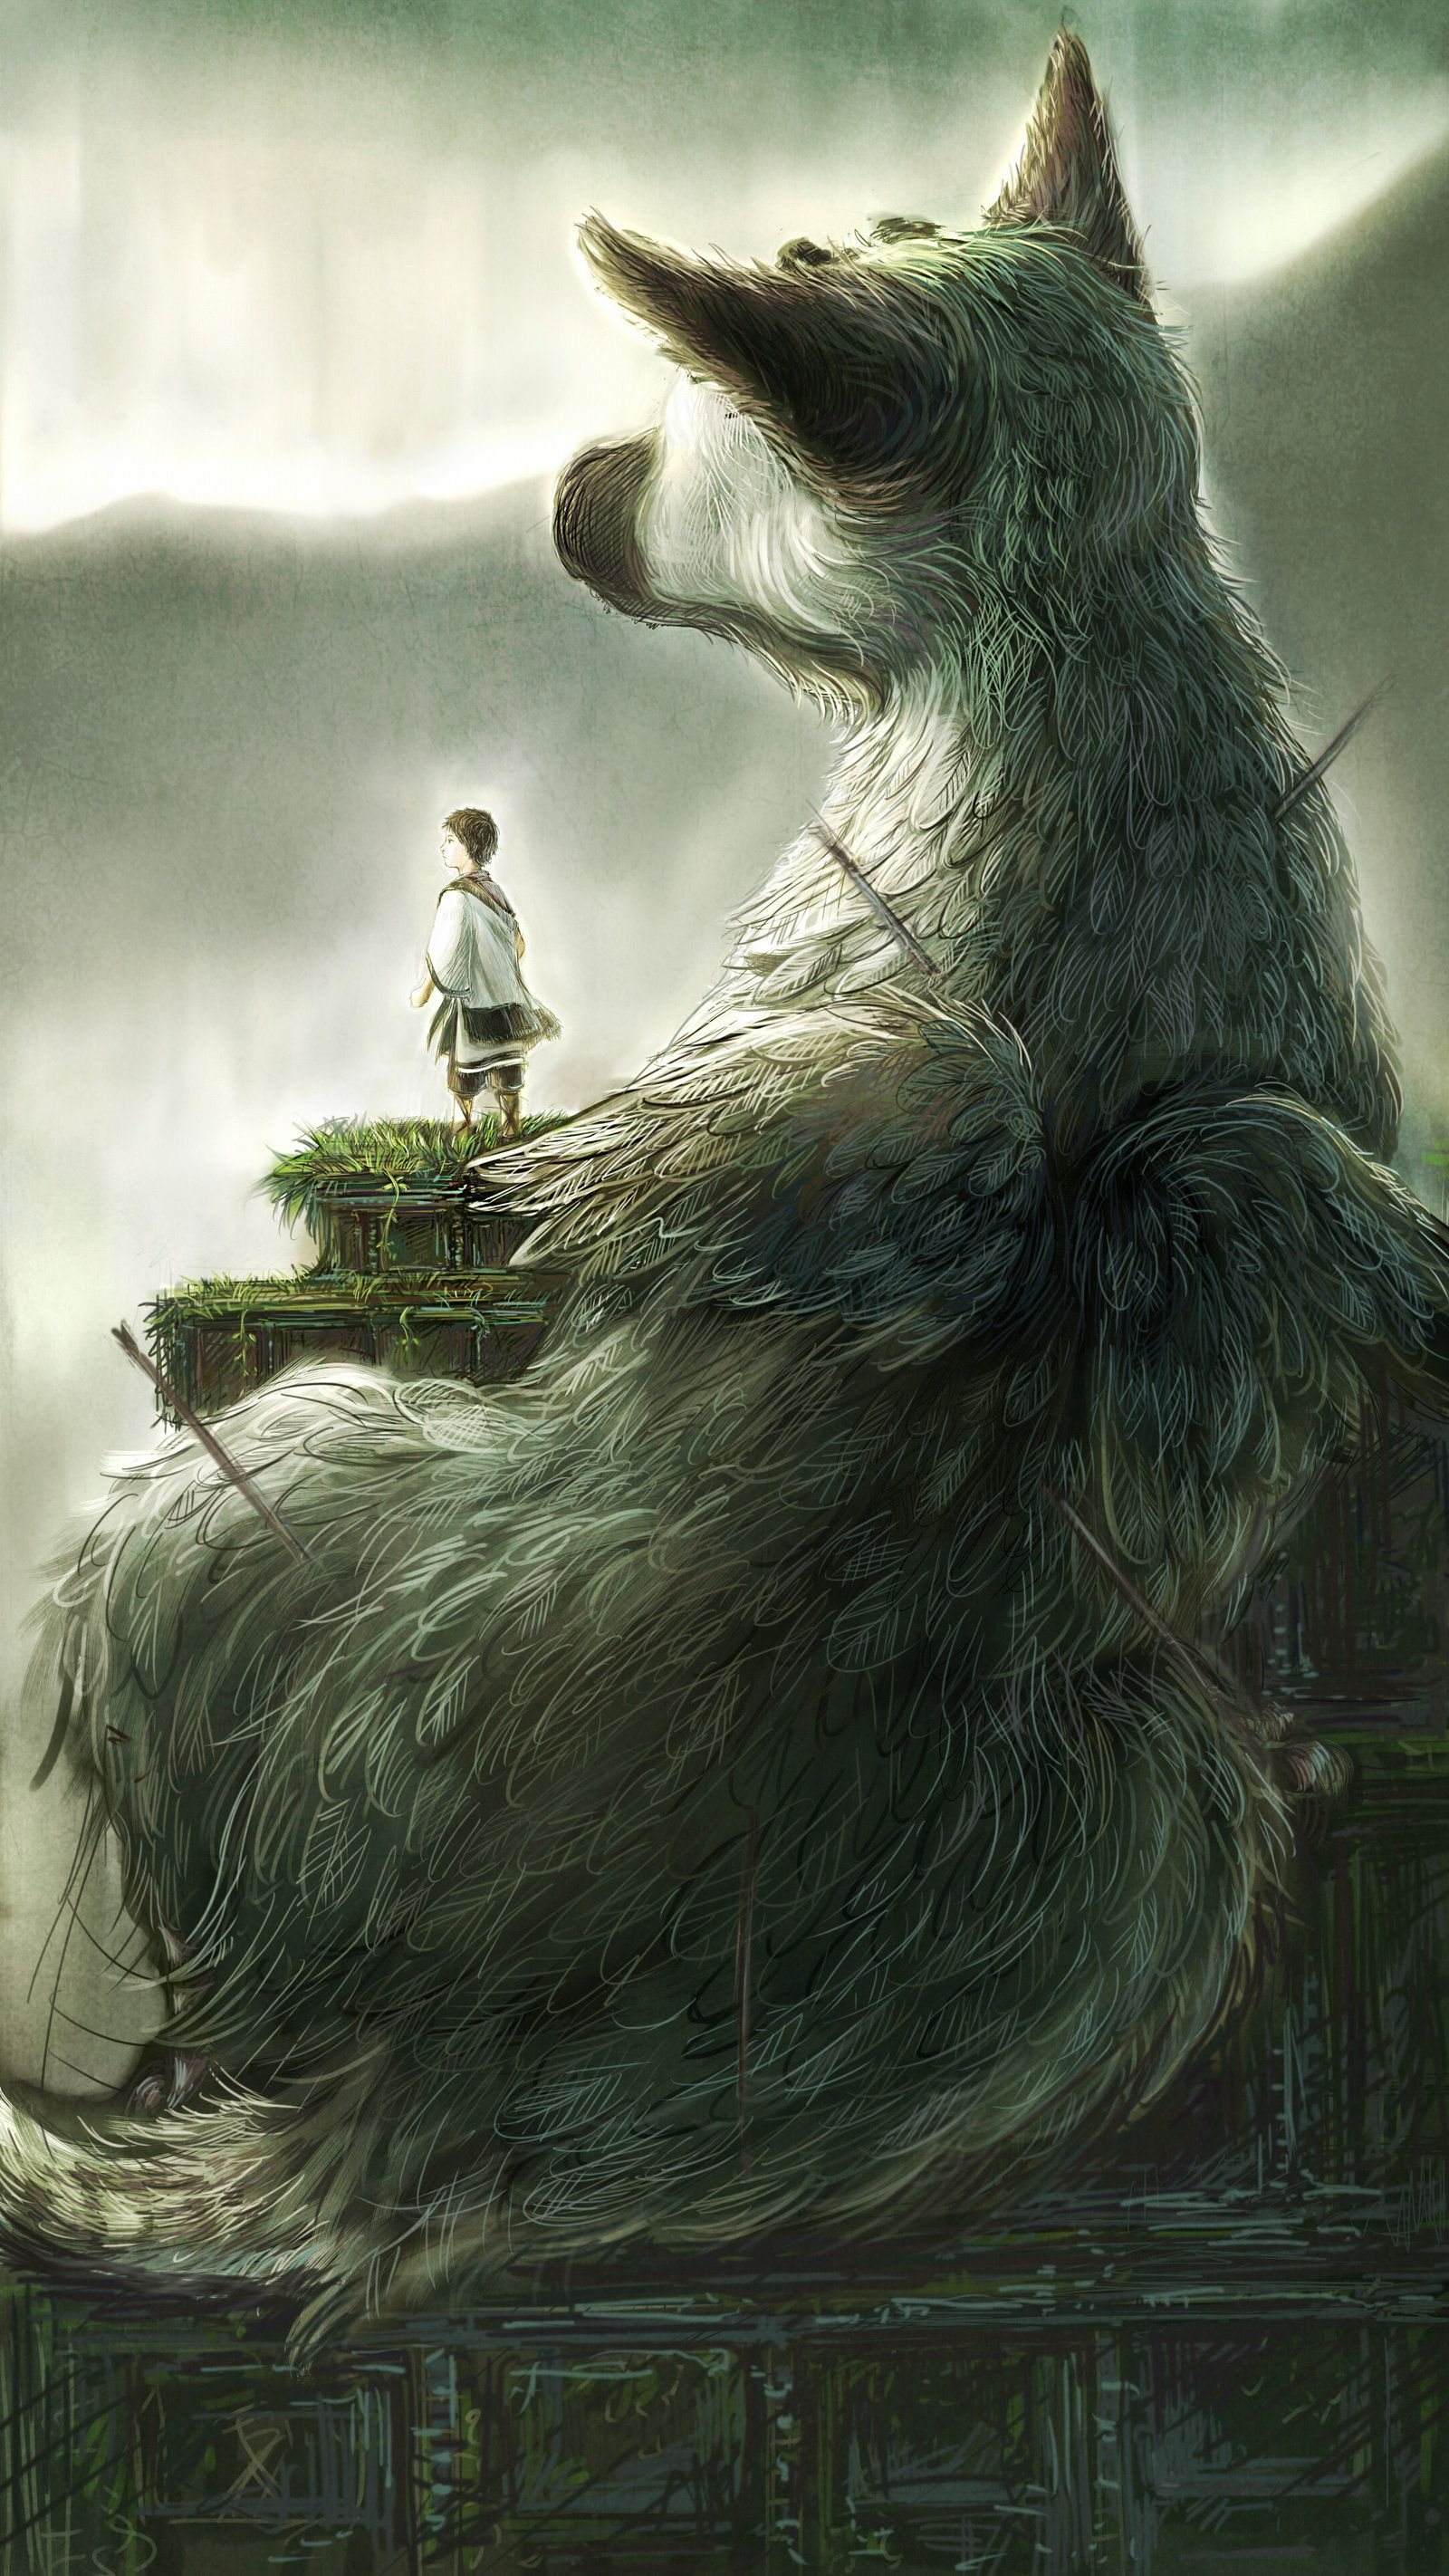 The Last Guardian...cannot wait for this game to FINALLY come out.  Beautiful artwork.